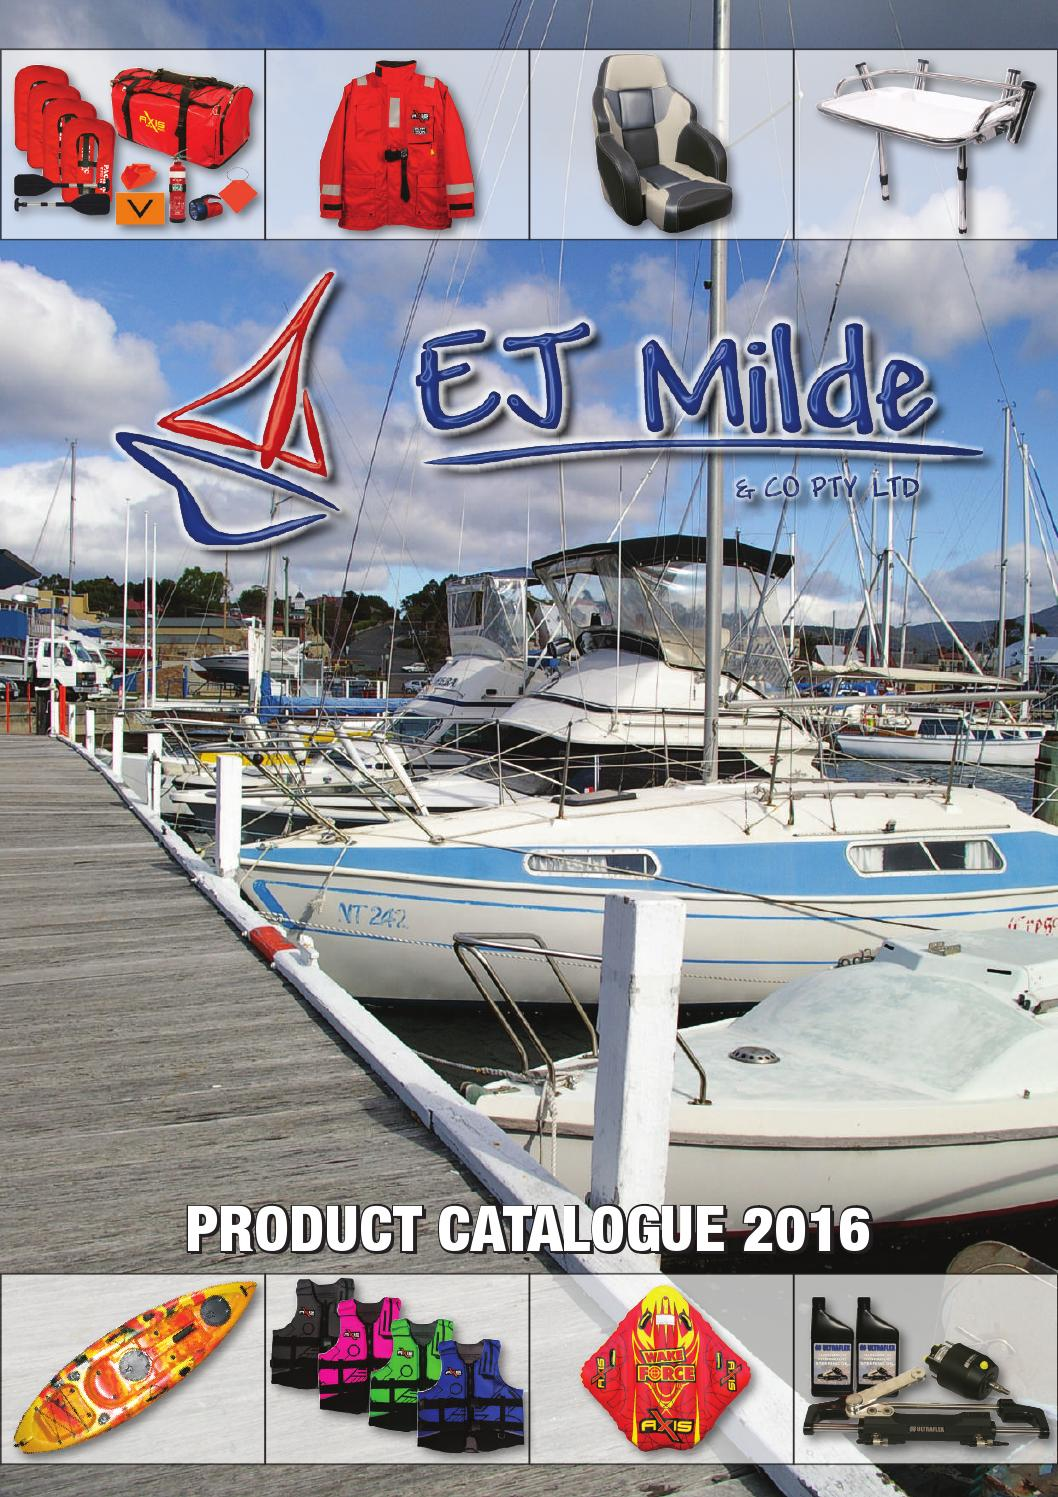 Ej Milde Product Catalogue 2016 By Co Pty Ltd Issuu Led Control Products Lectrotab Electromechanical Trim Tab Systems